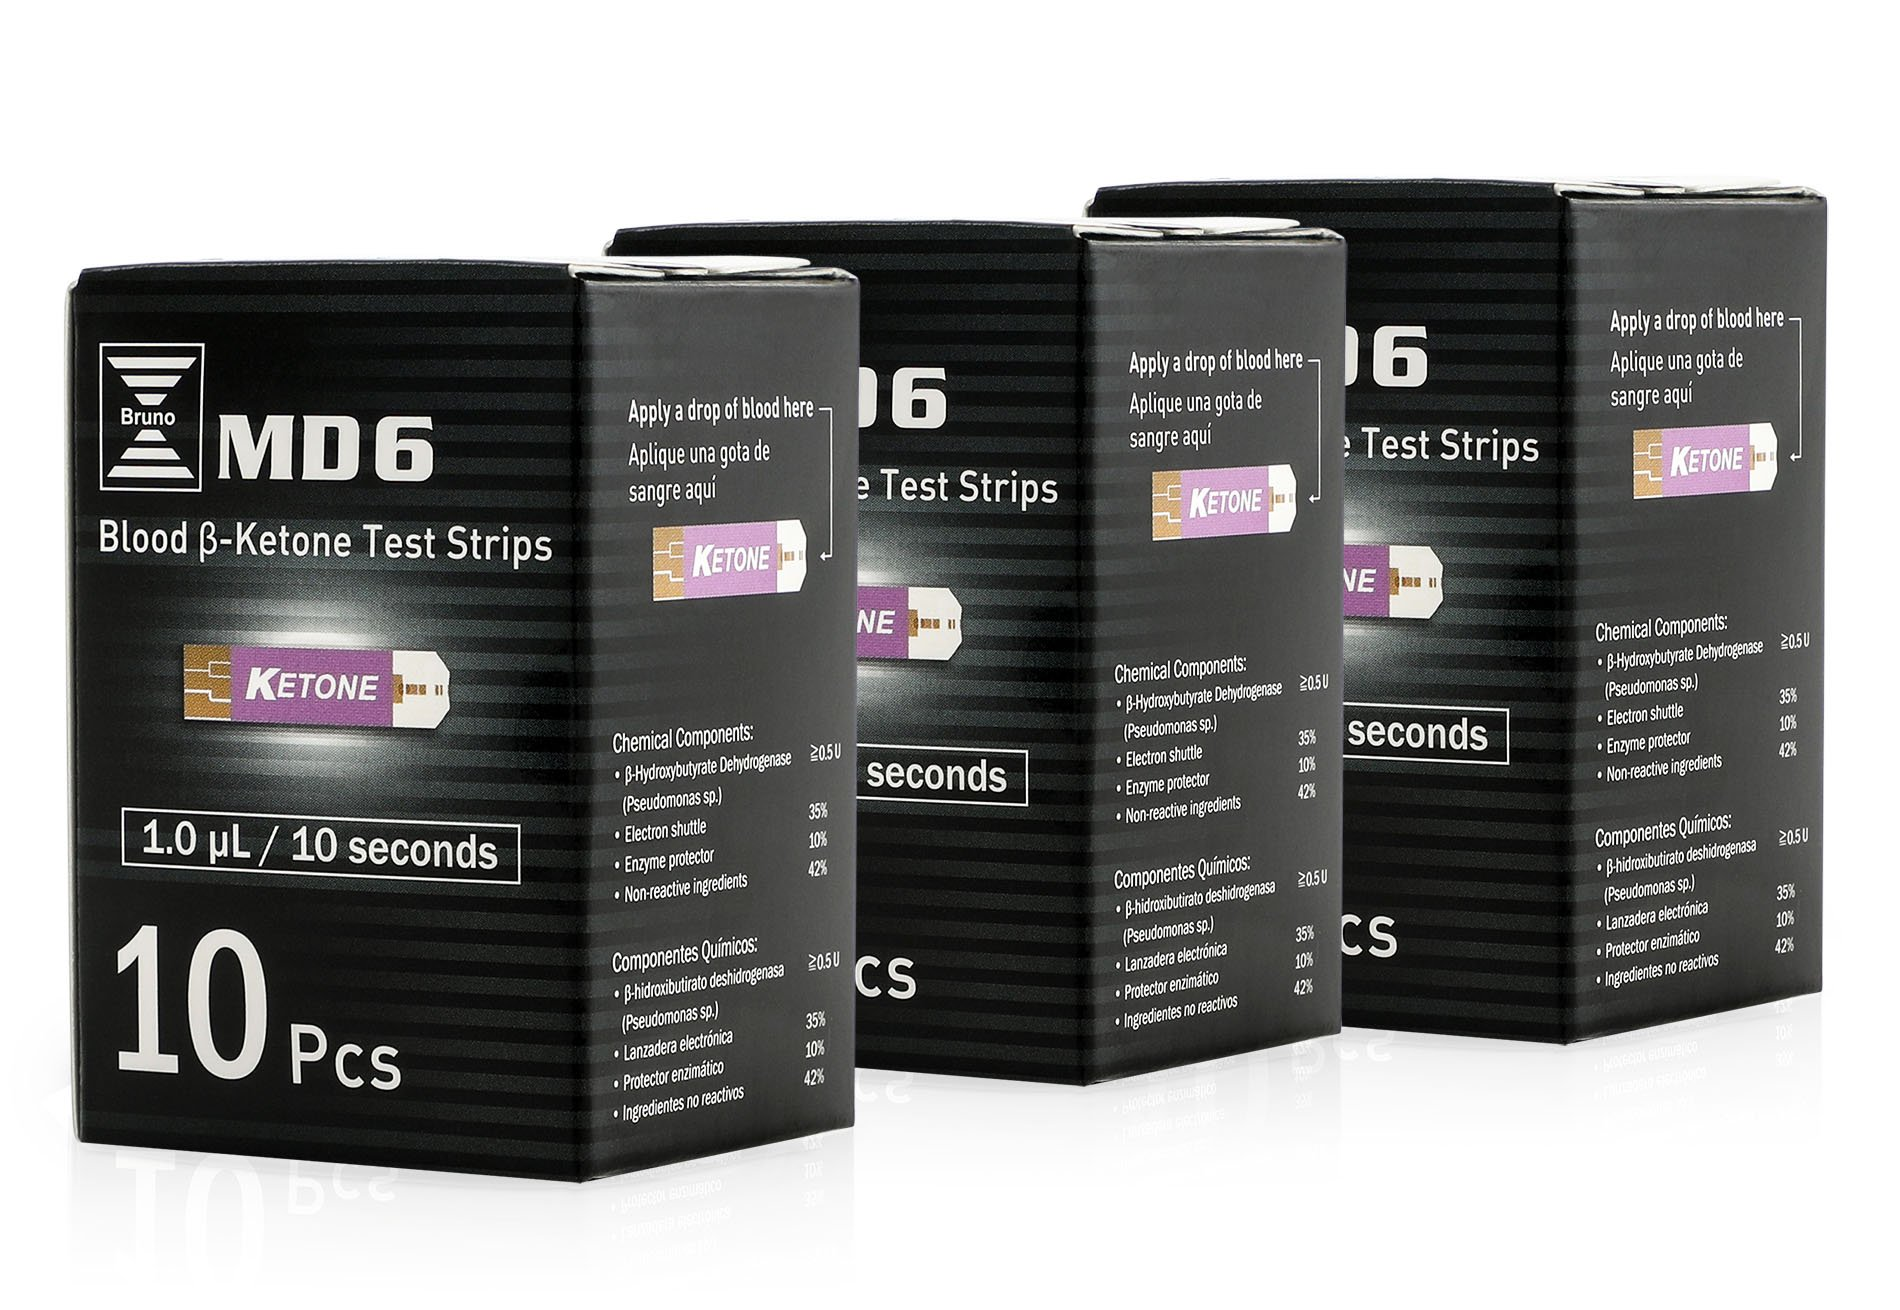 Bruno Pharma MD6 3 Boxes of 10 Ketone Test Strips to Use with Our MD6 Blood Monitoring System | Stay in Ketosis and Get The Best Results with Accurate Keto Counts While Following The Ketogenic Diet by Bruno MD6